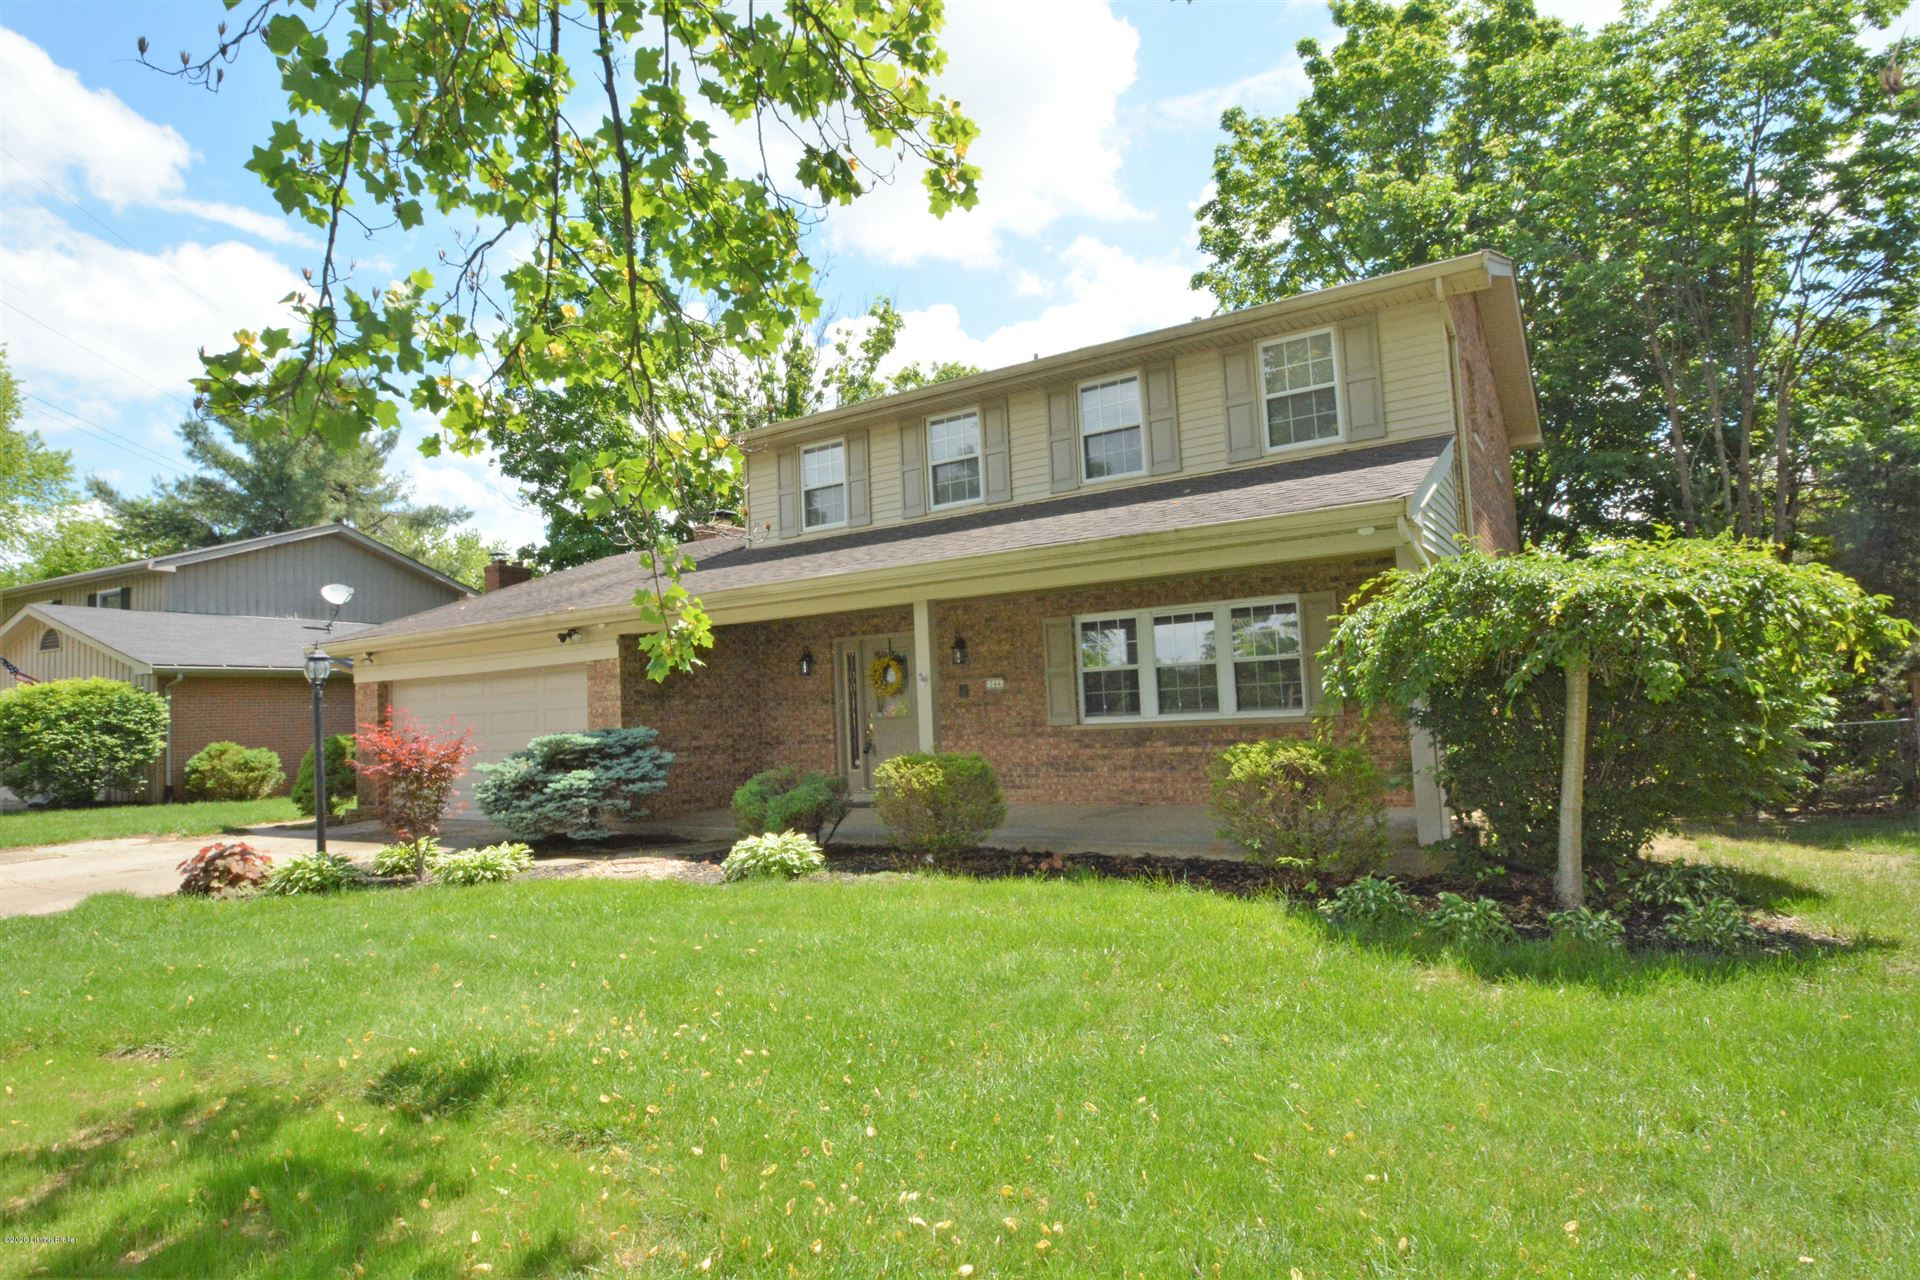 Property Image Of 744 Meadow View Dr In Villa Hills, Ky